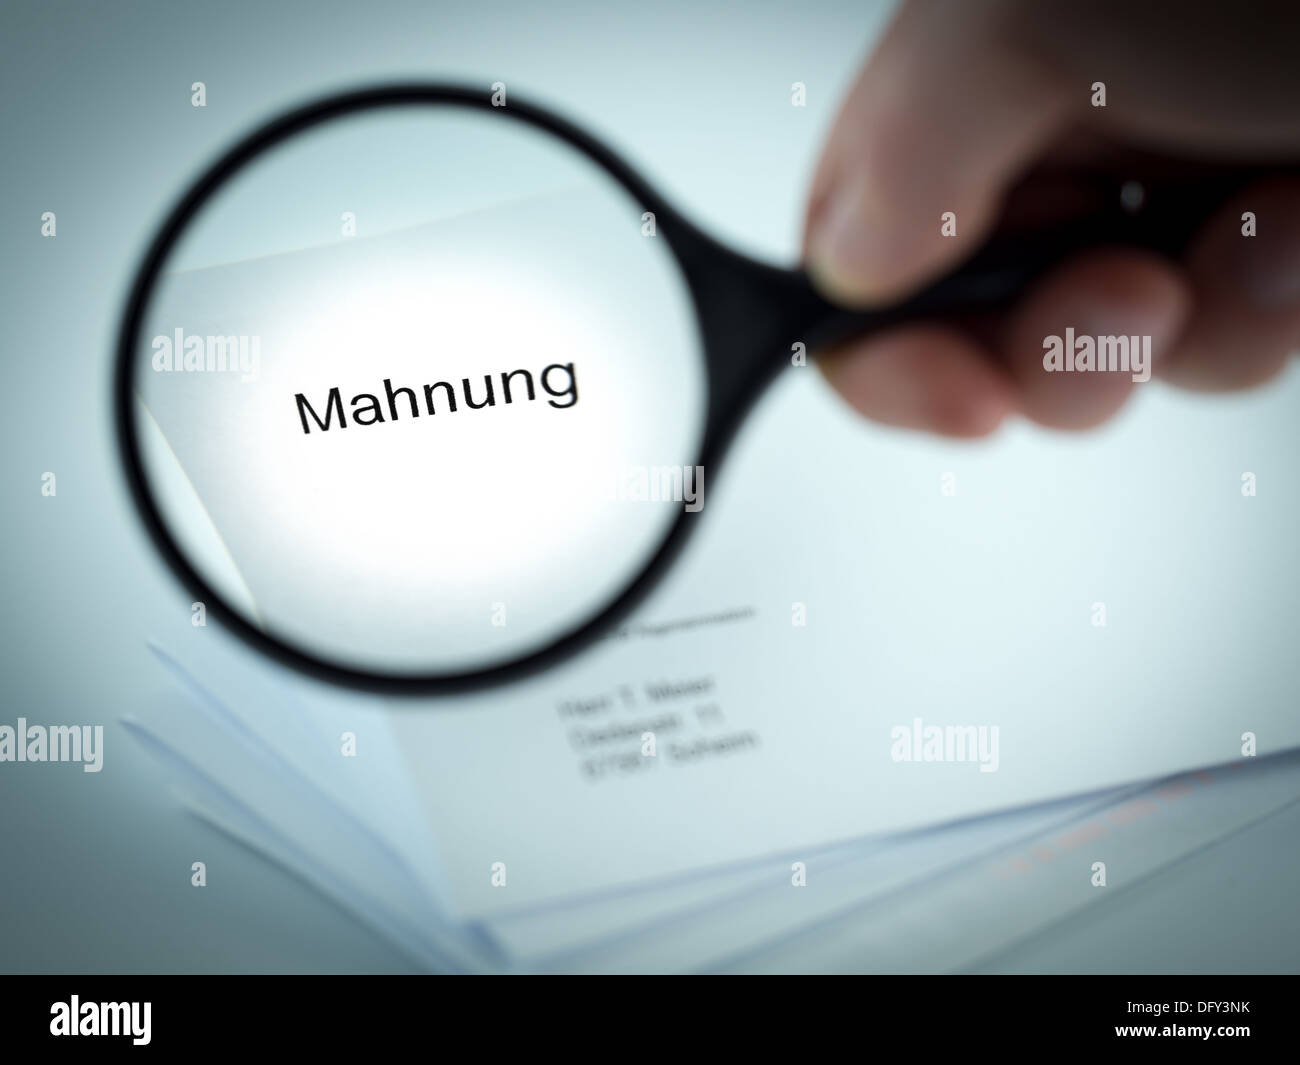 Cover letter with the word Mahnung in the letterhead - Stock Image